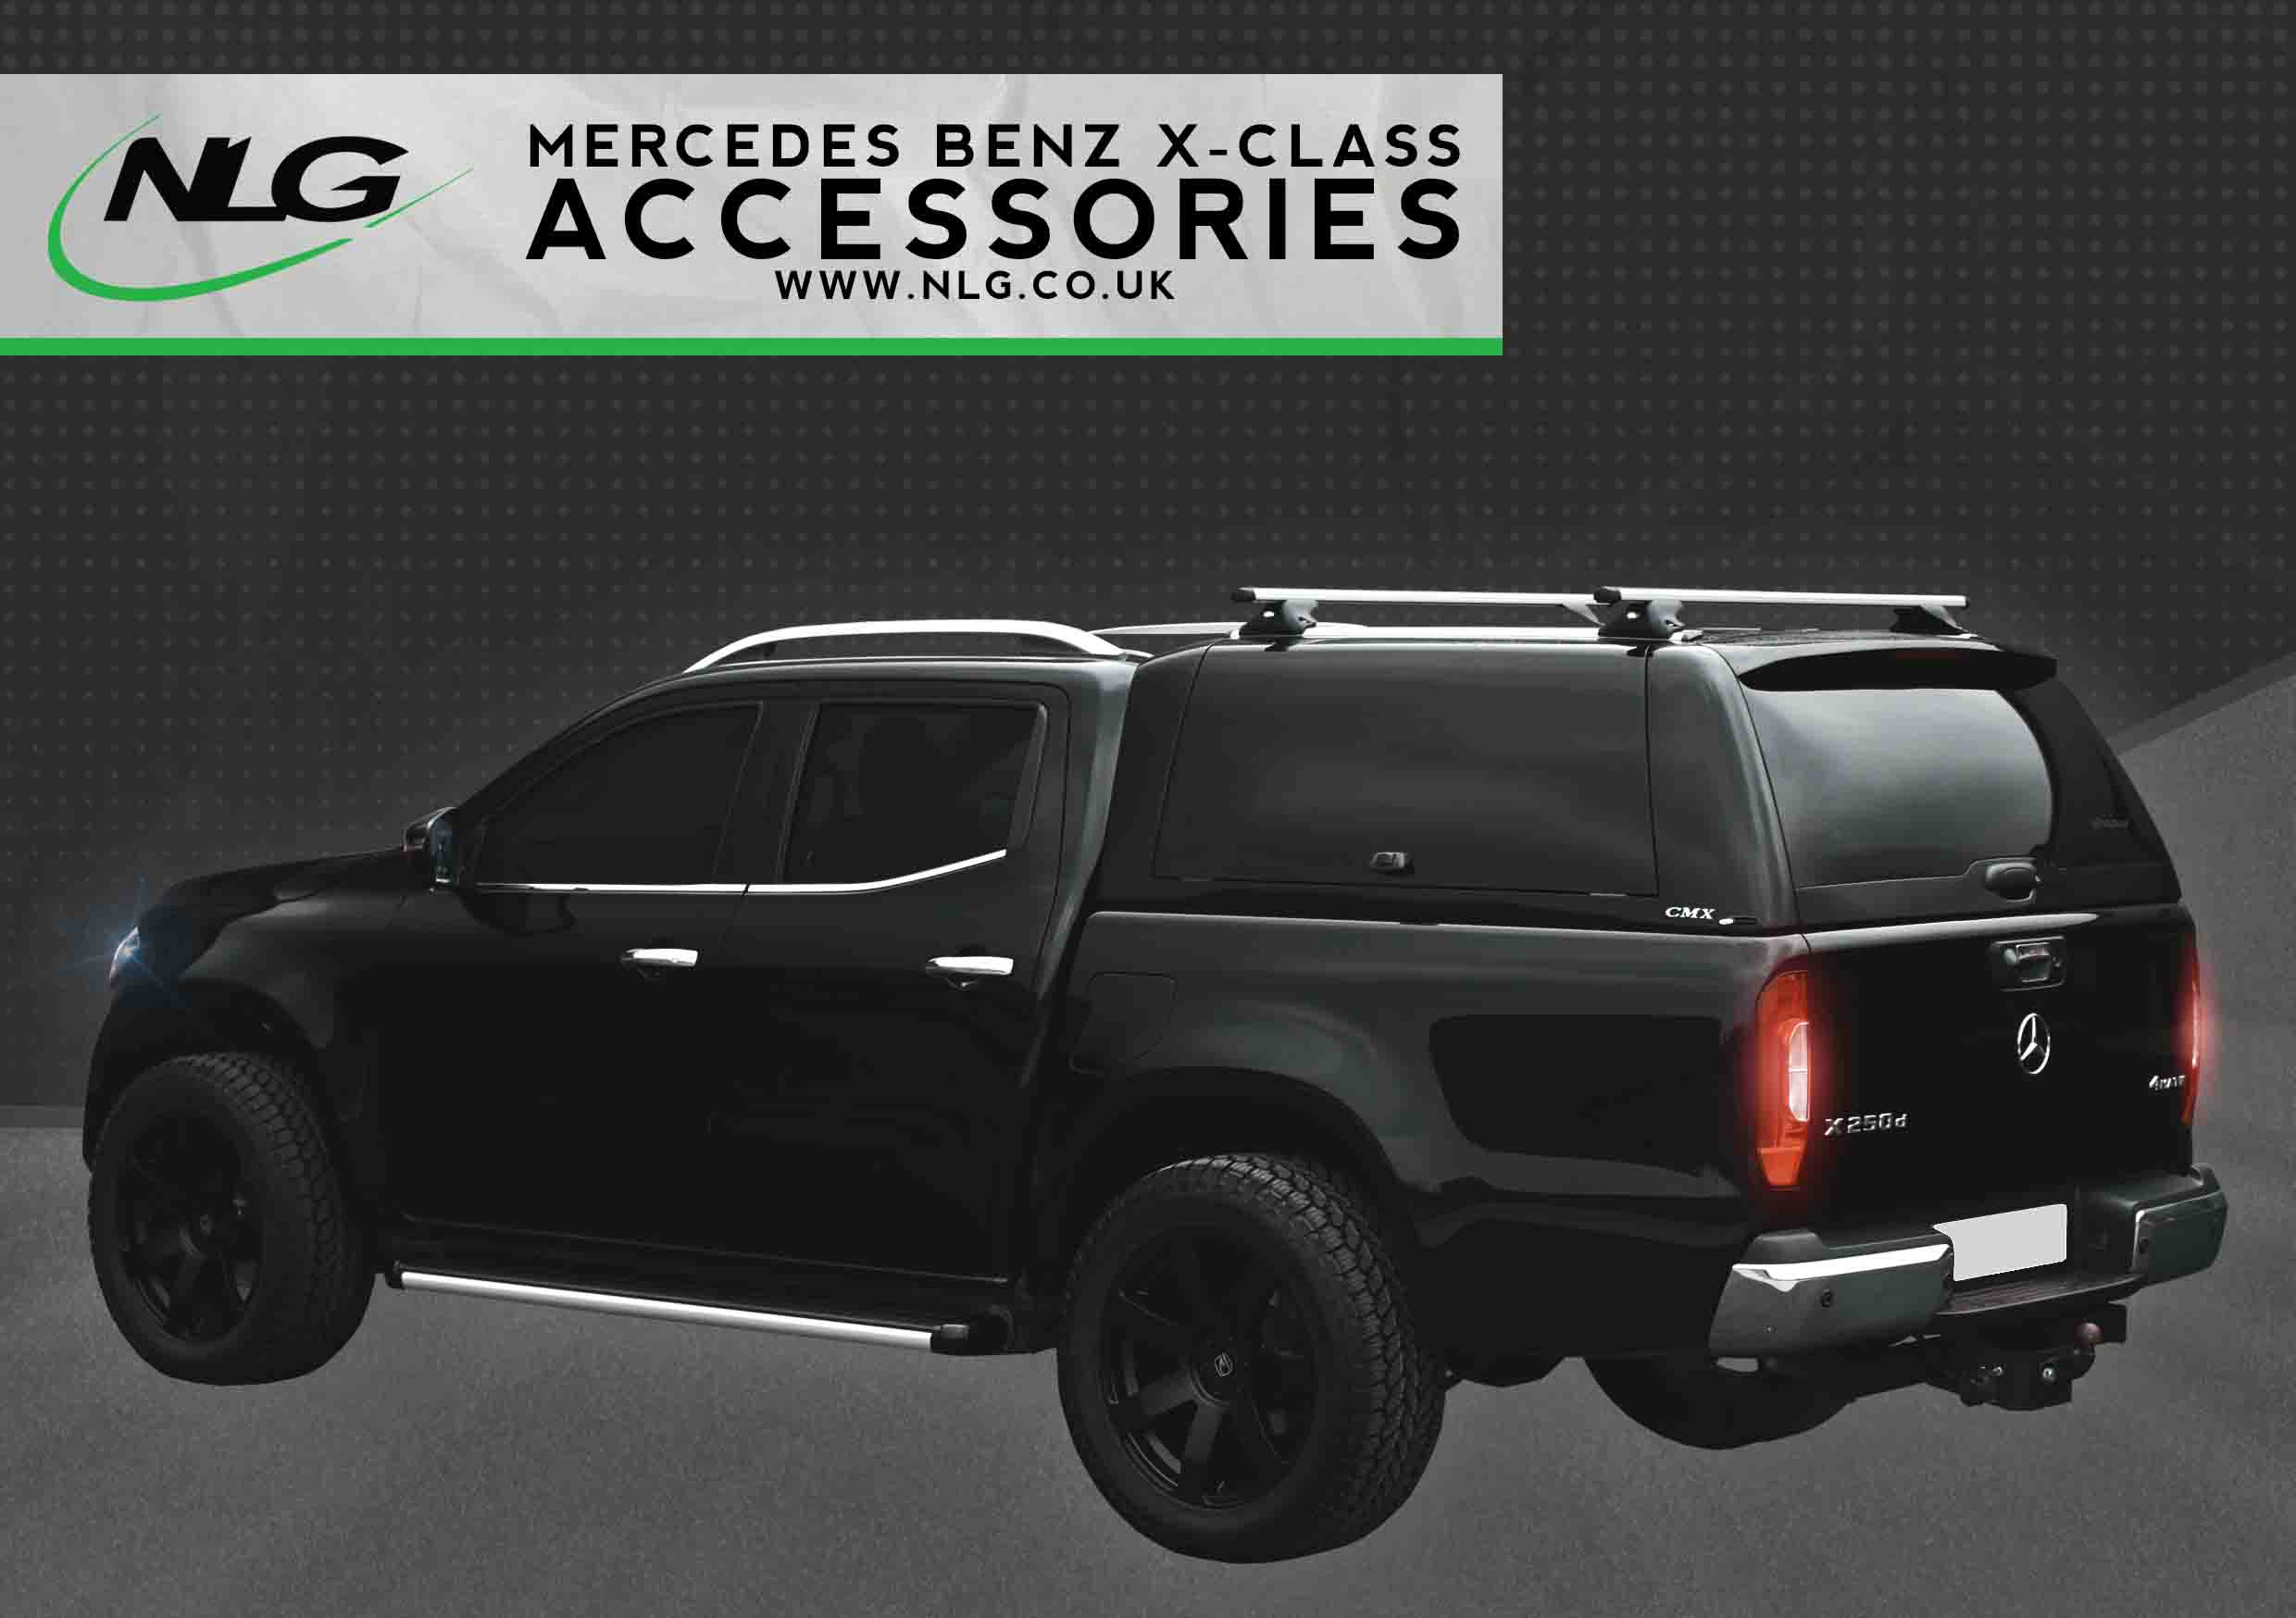 Mercedes-Benz X-Class Accessories Brochure Download